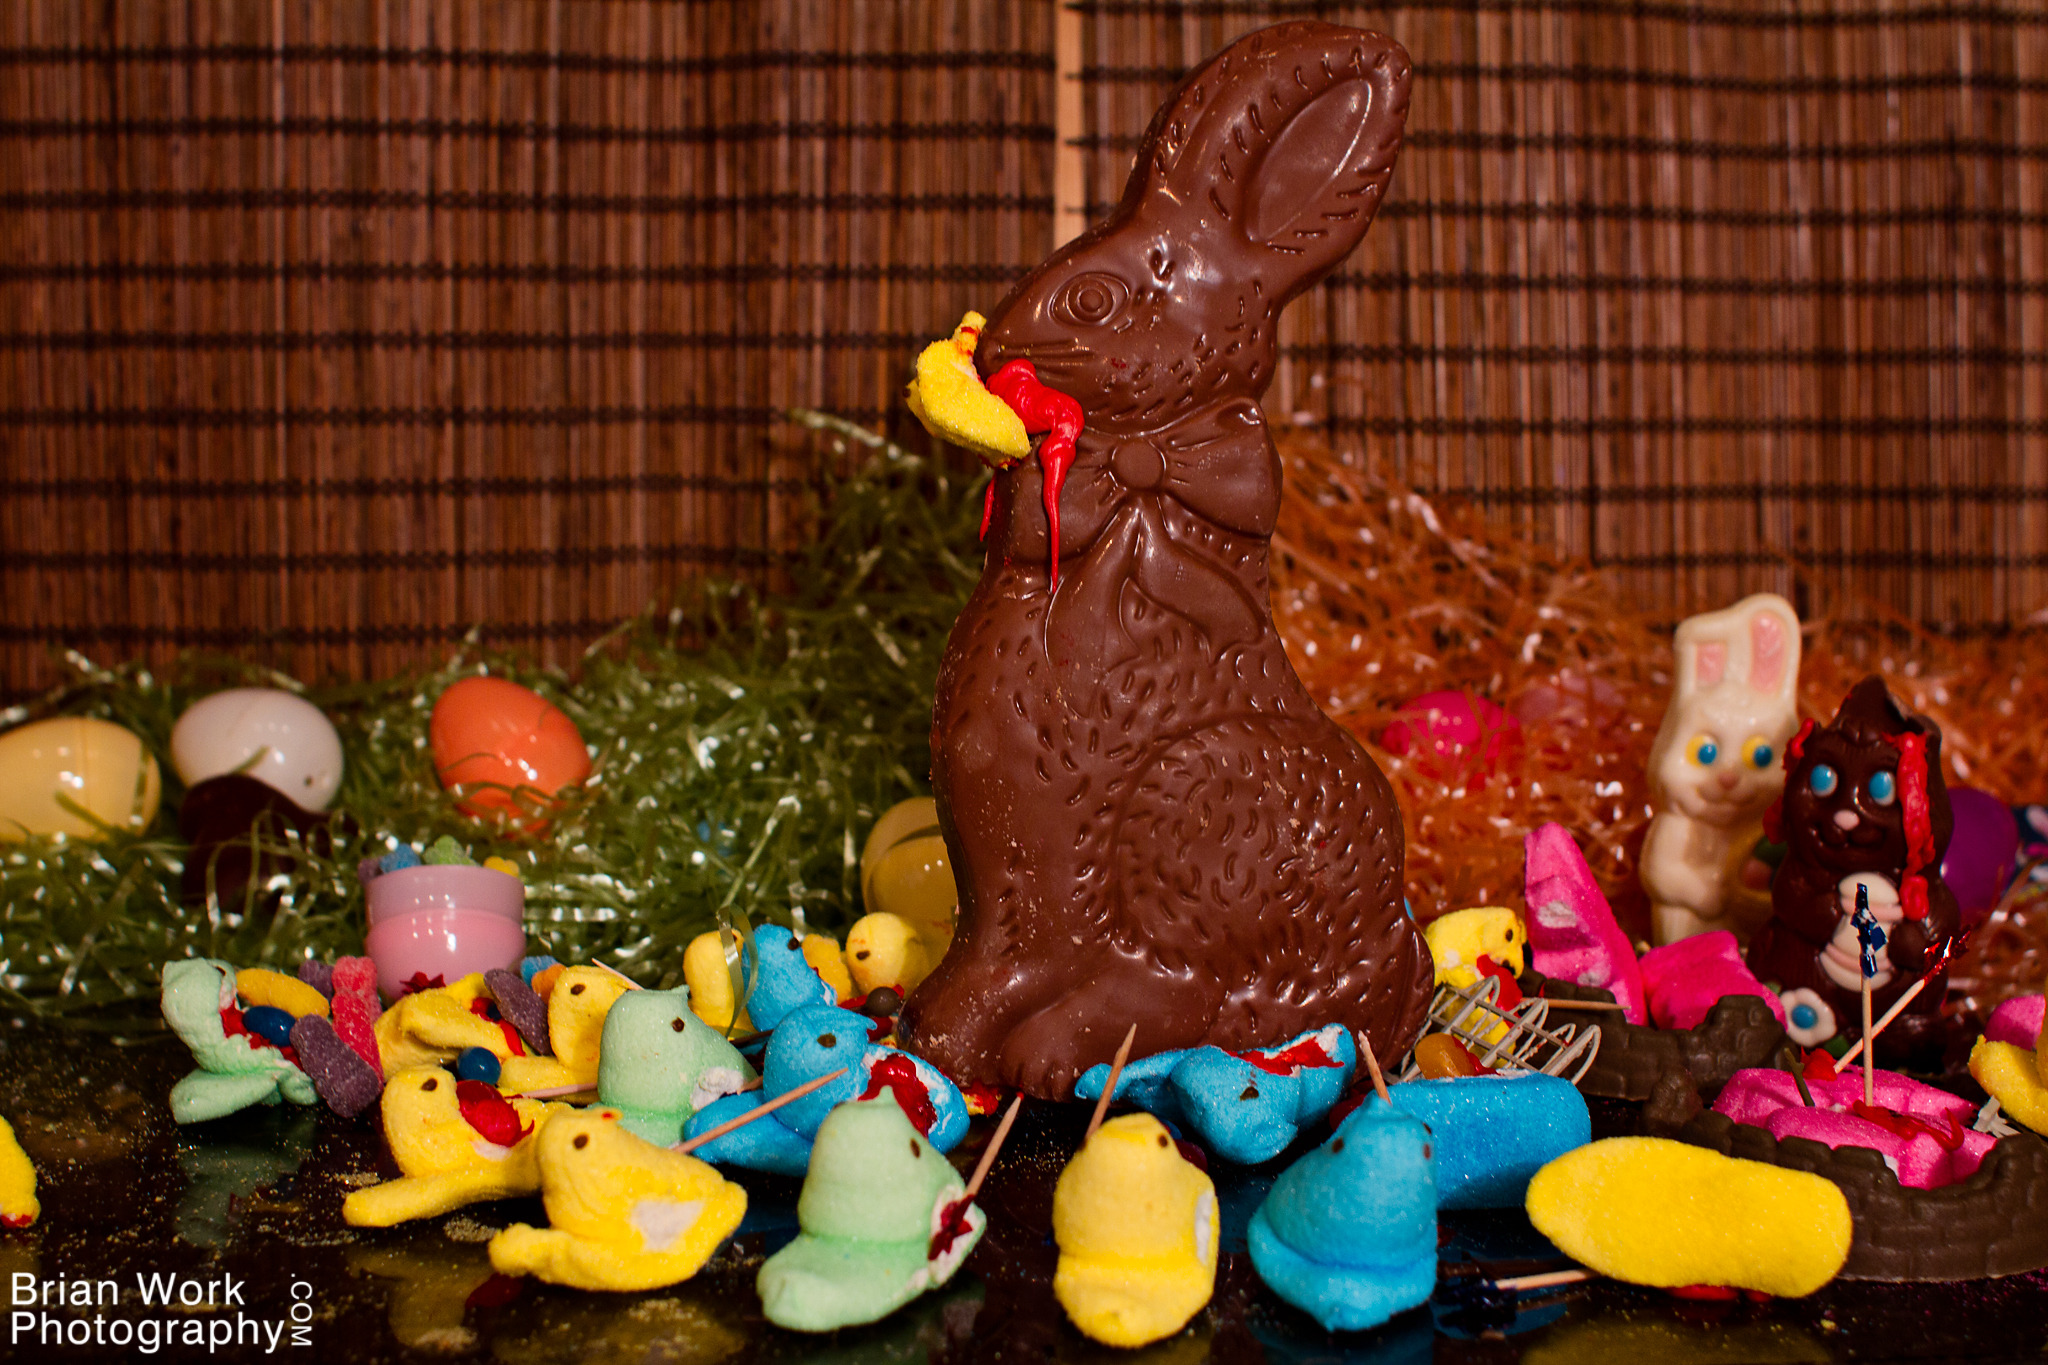 <h5>Back on the battlefield, Bunny Kong was running rampant, stampeding over Peeps and devouring them whole. The remaining chicks circled around him, waiting for their moment.</h5>